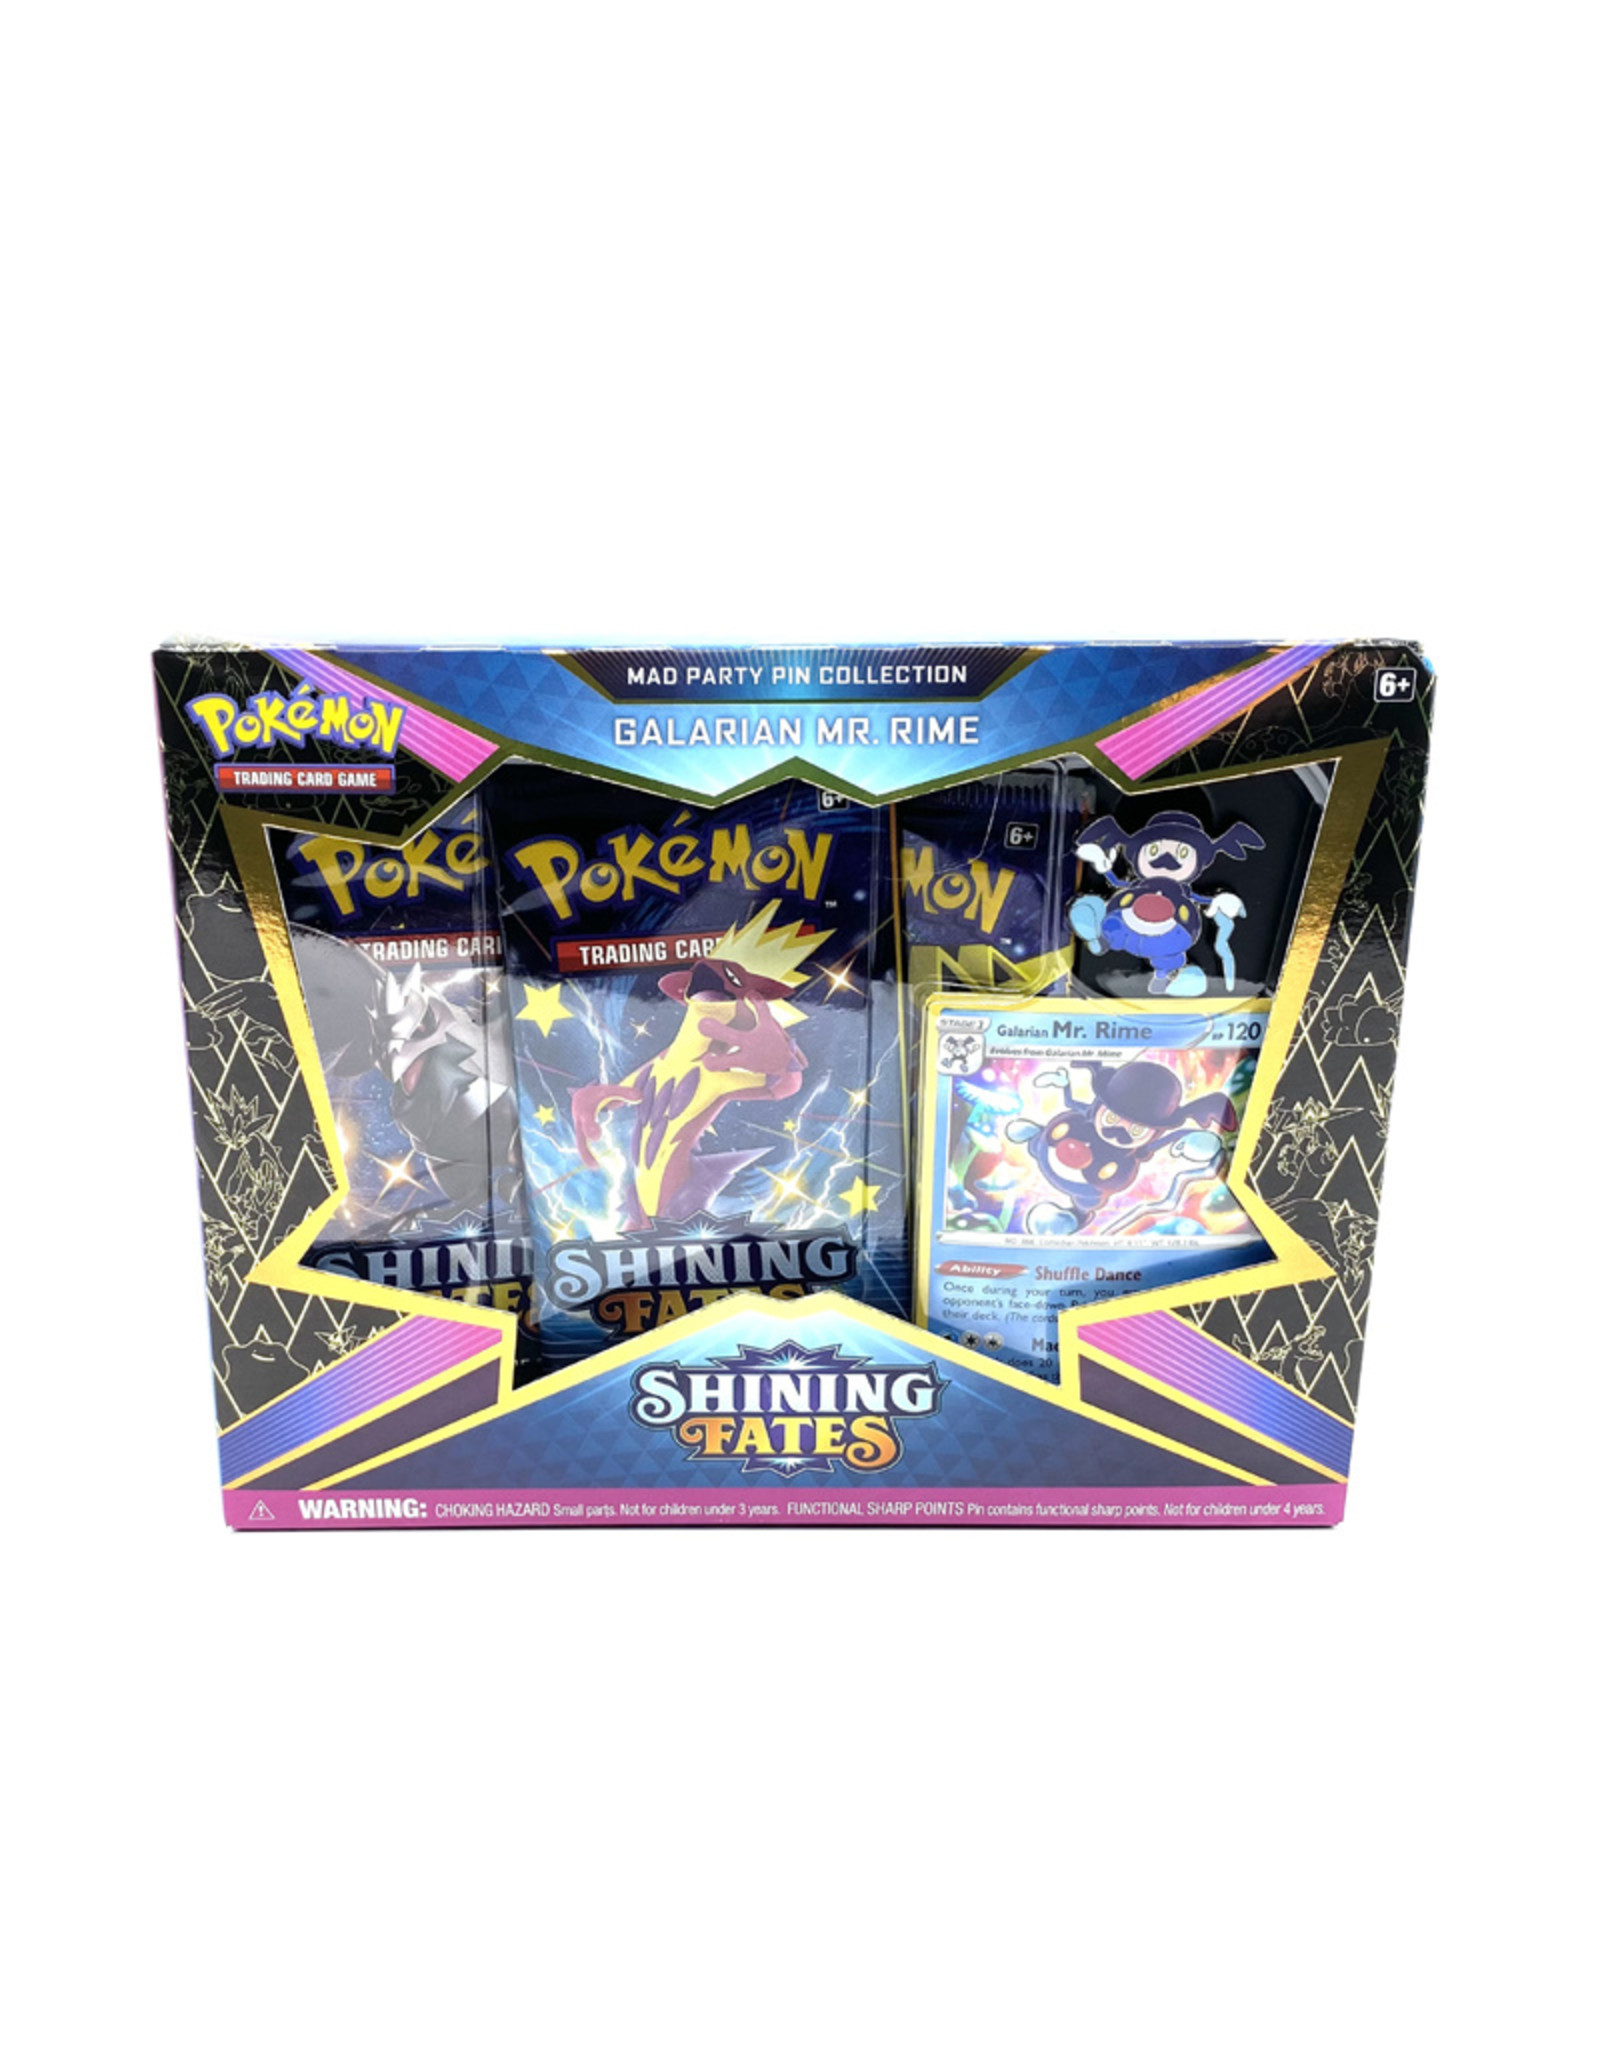 Pokemon ( Set of Cards ) Mad Party Pin Collection Shining Fates